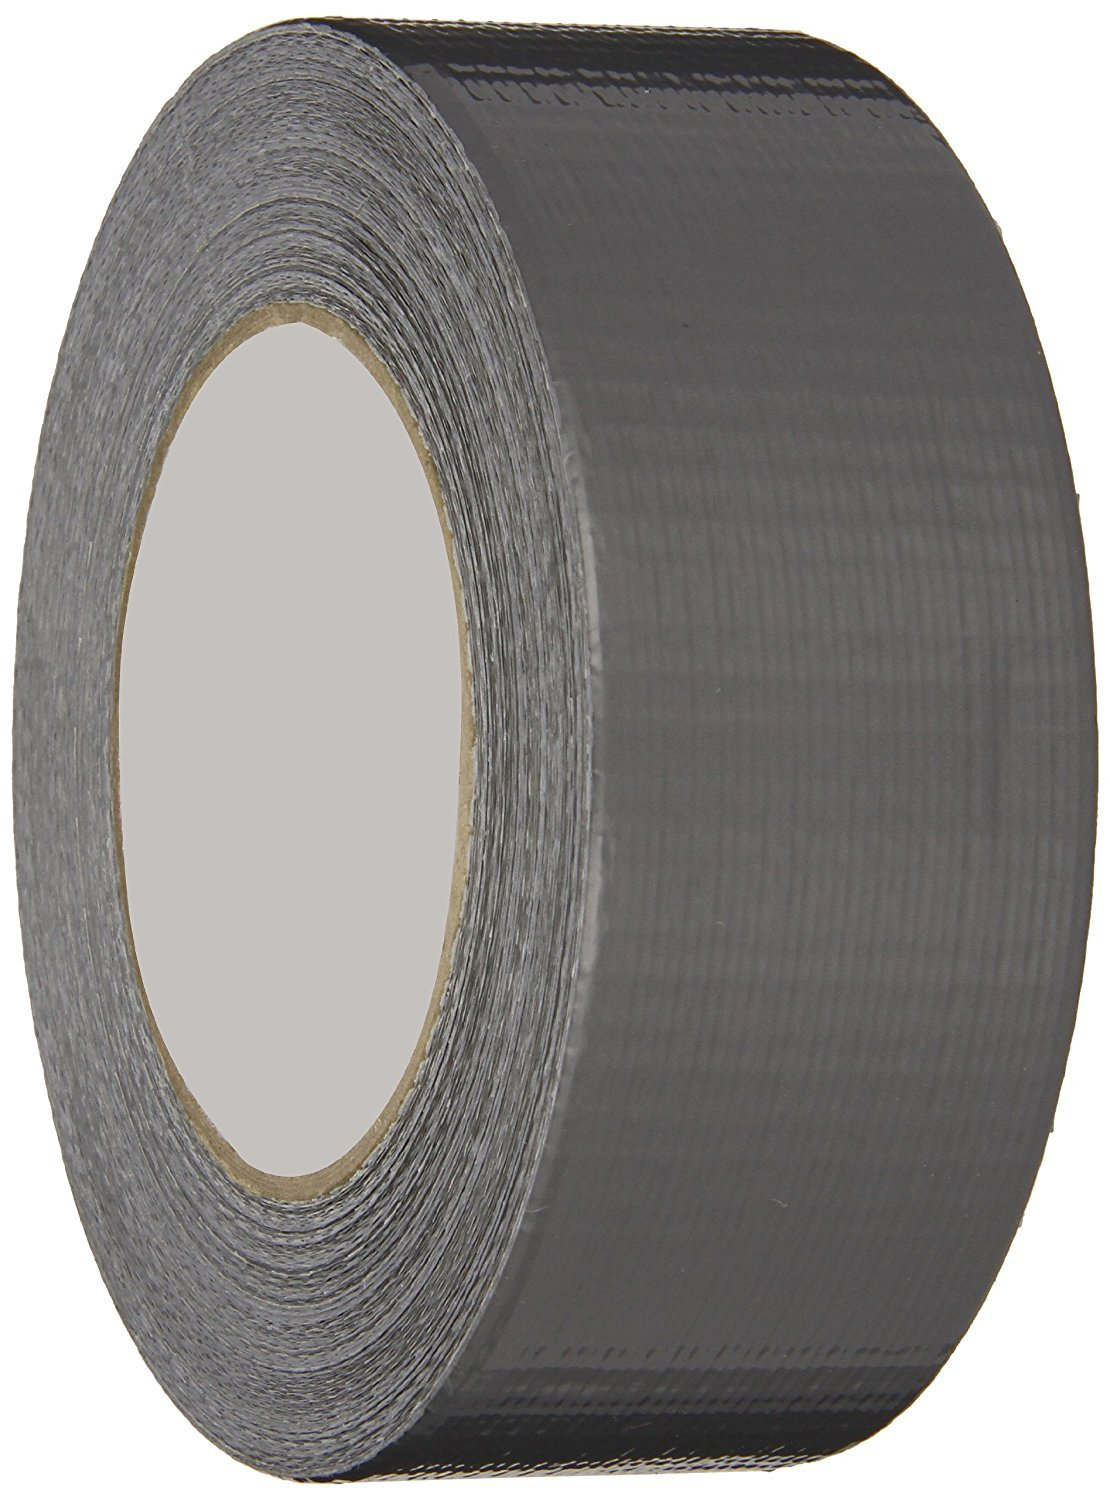 Intertape Polymer Group 87372 AC10 7mil Utility Grade Cloth/Duct Tape, 1.88'' x 60yd , Silver, Case of 24 Rolls